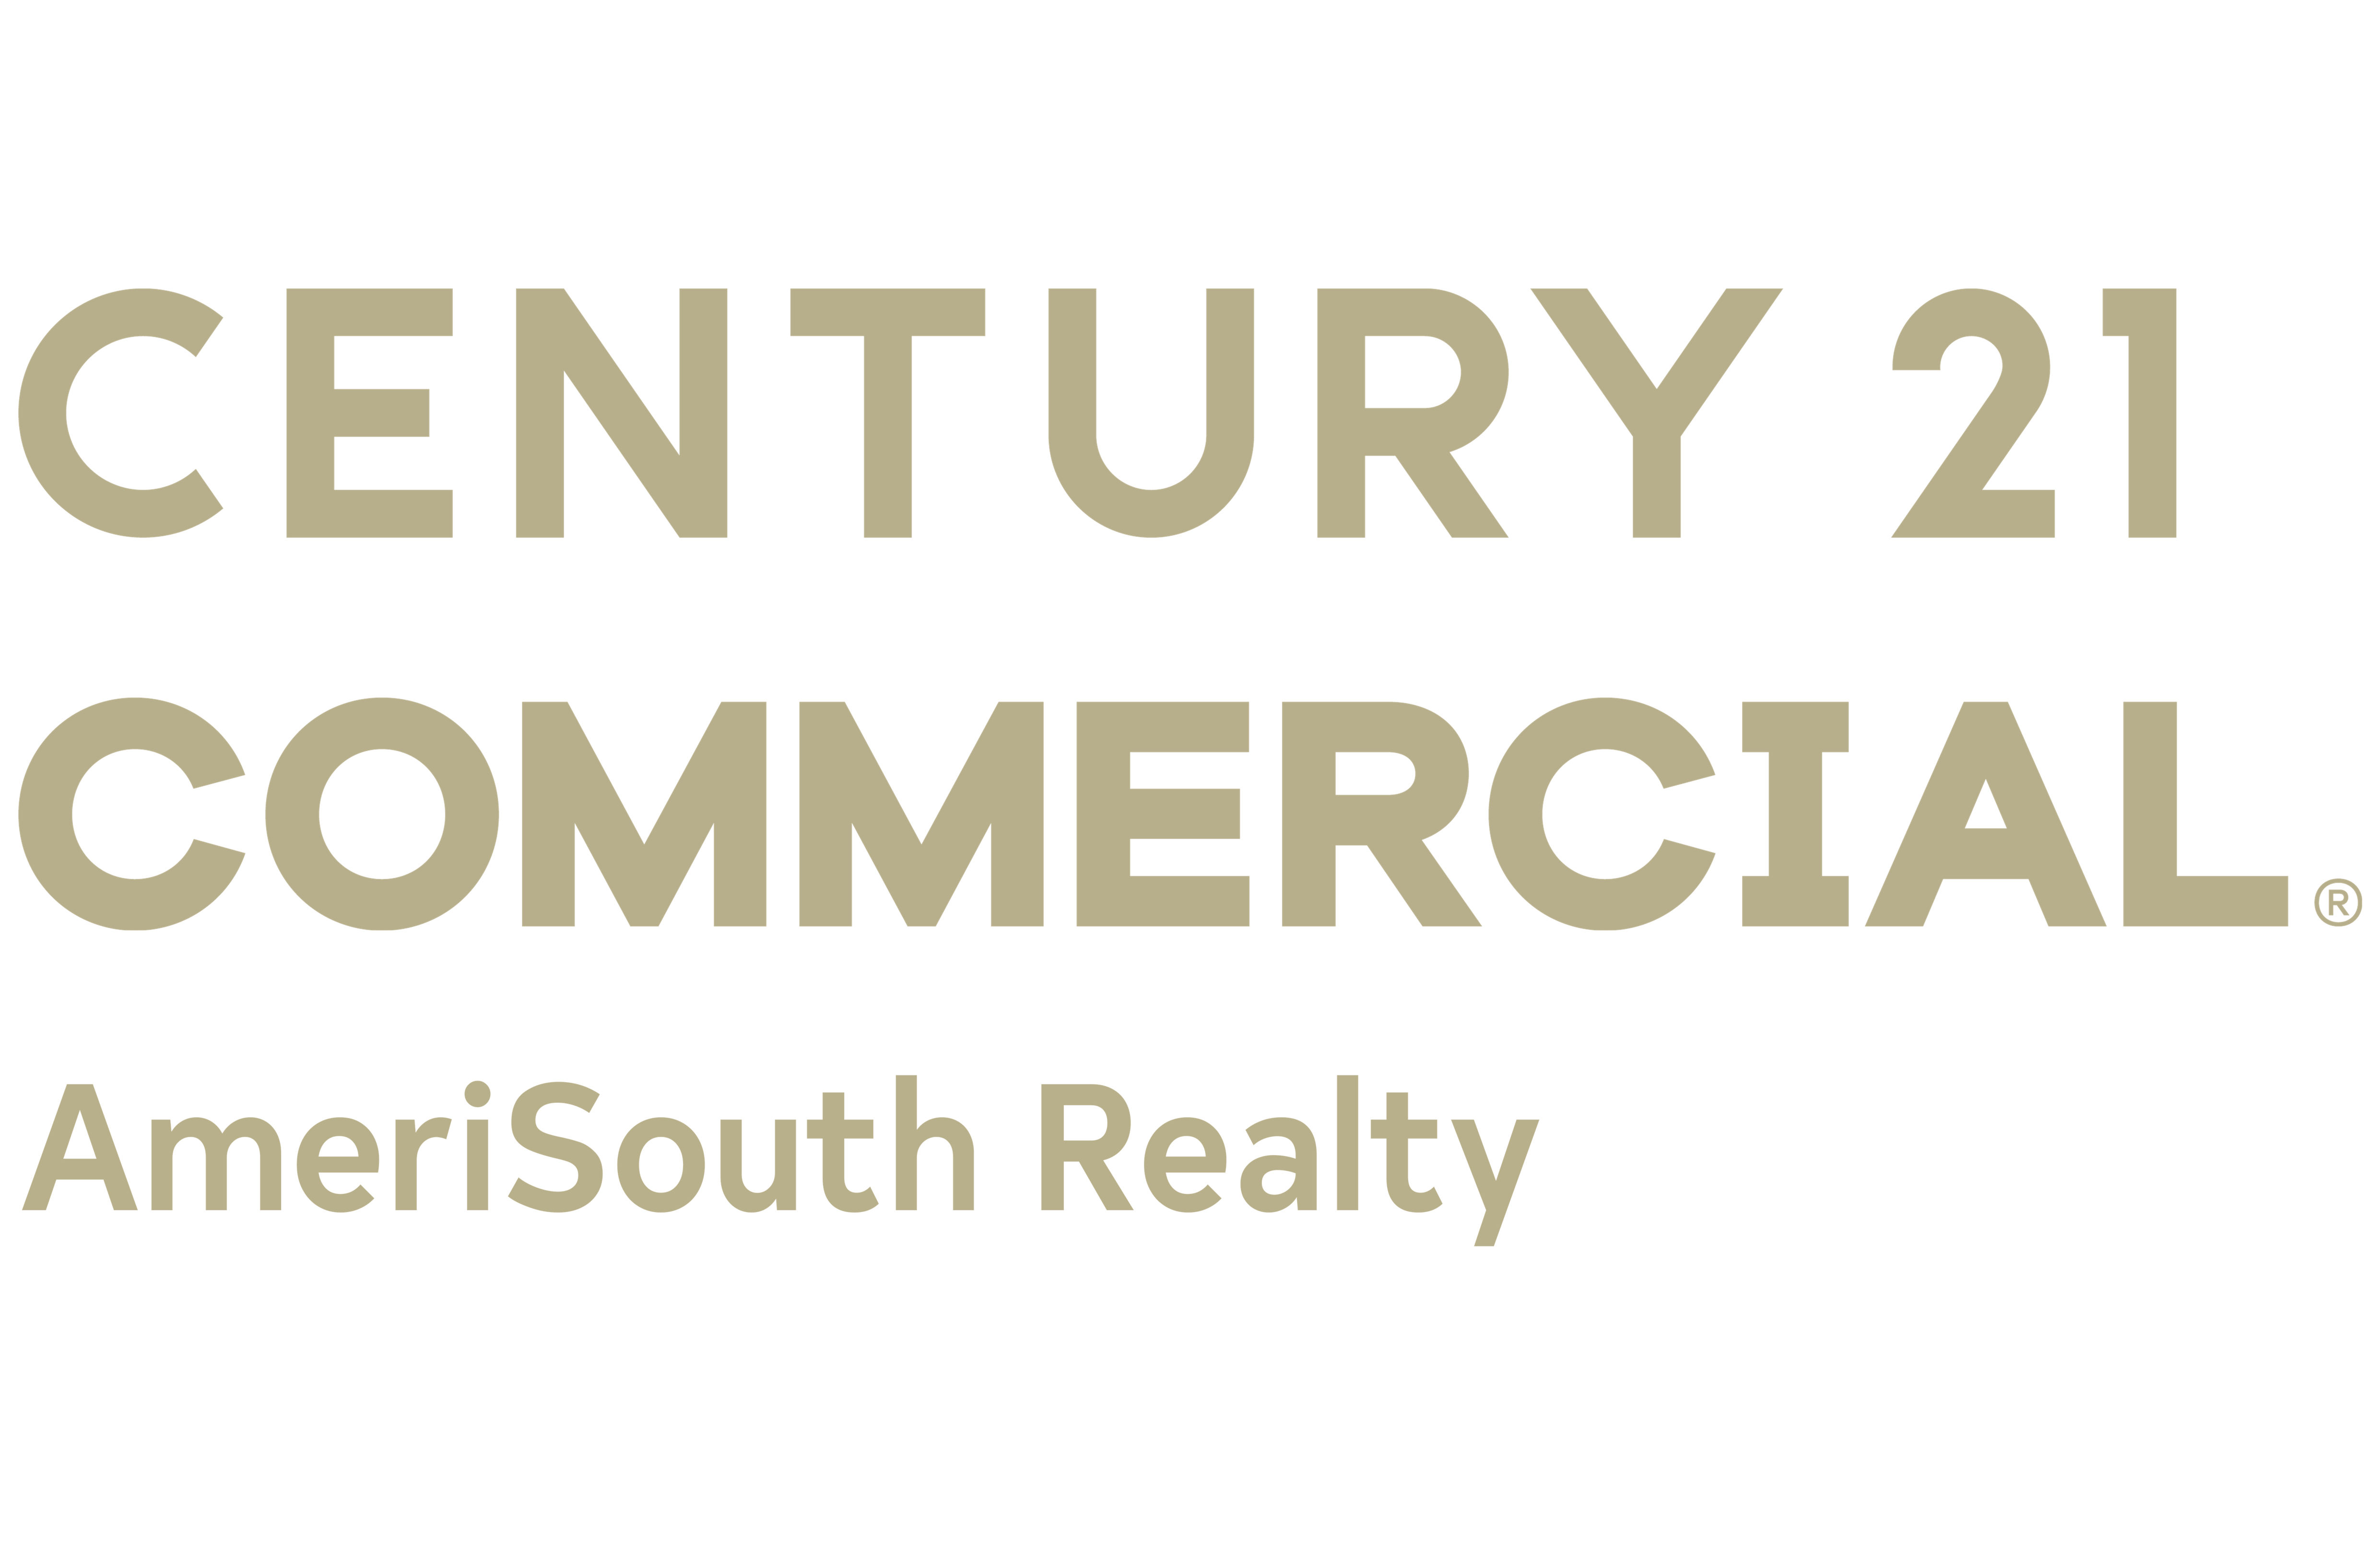 CENTURY 21 AmeriSouth Realty